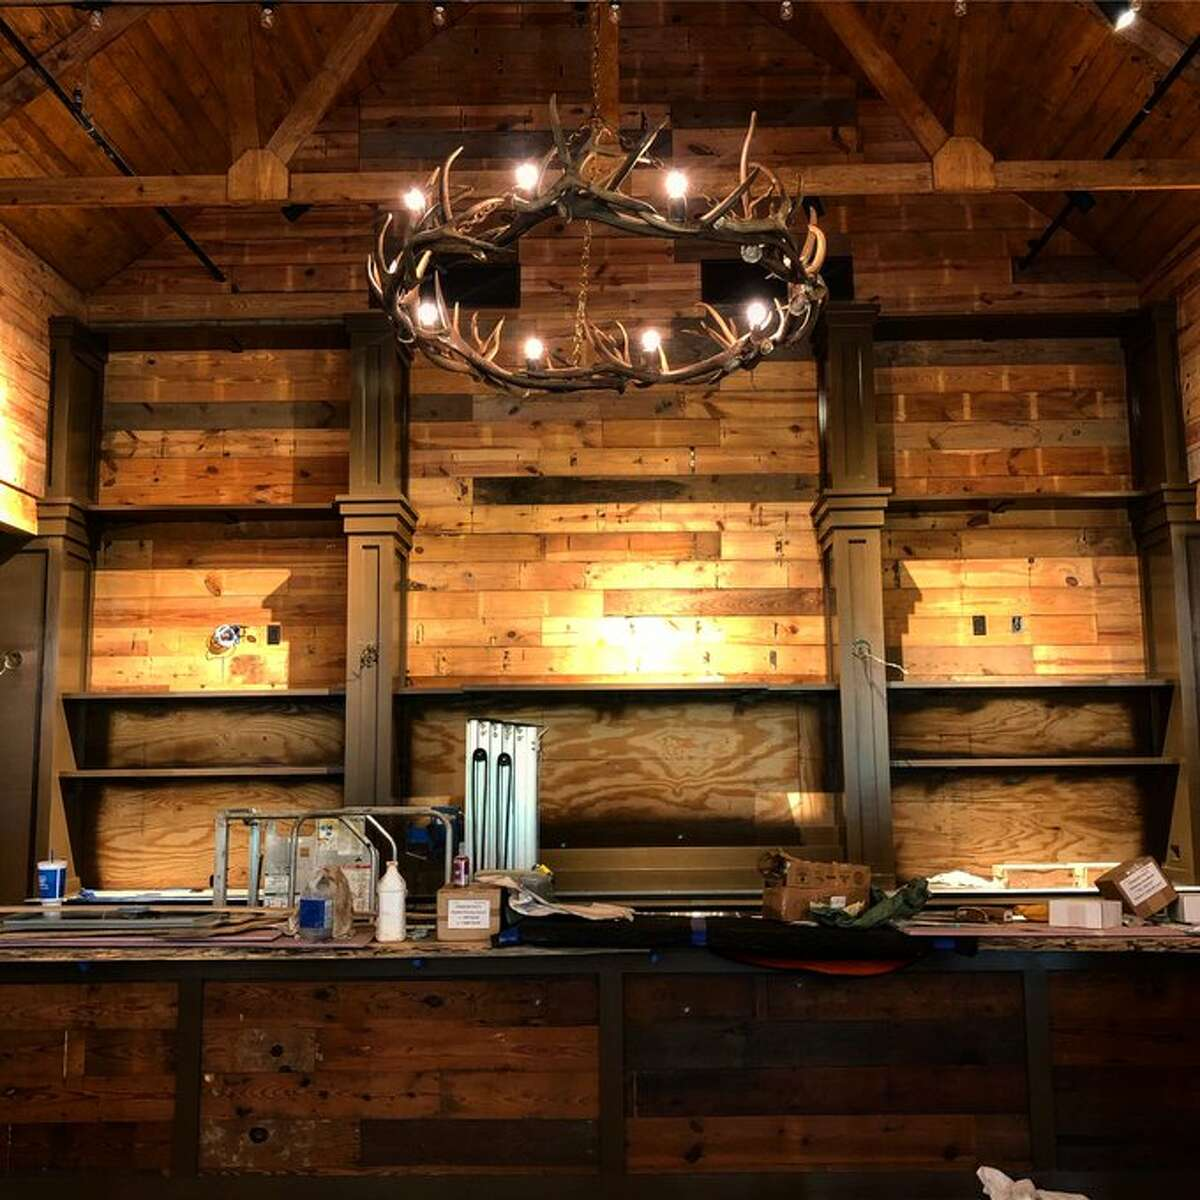 """""""We are so excited for our San Antonio adventure to start,"""" the restaurant shared online. """"We are on the home stretch and extremely amped up to unveil this project to y'all."""""""